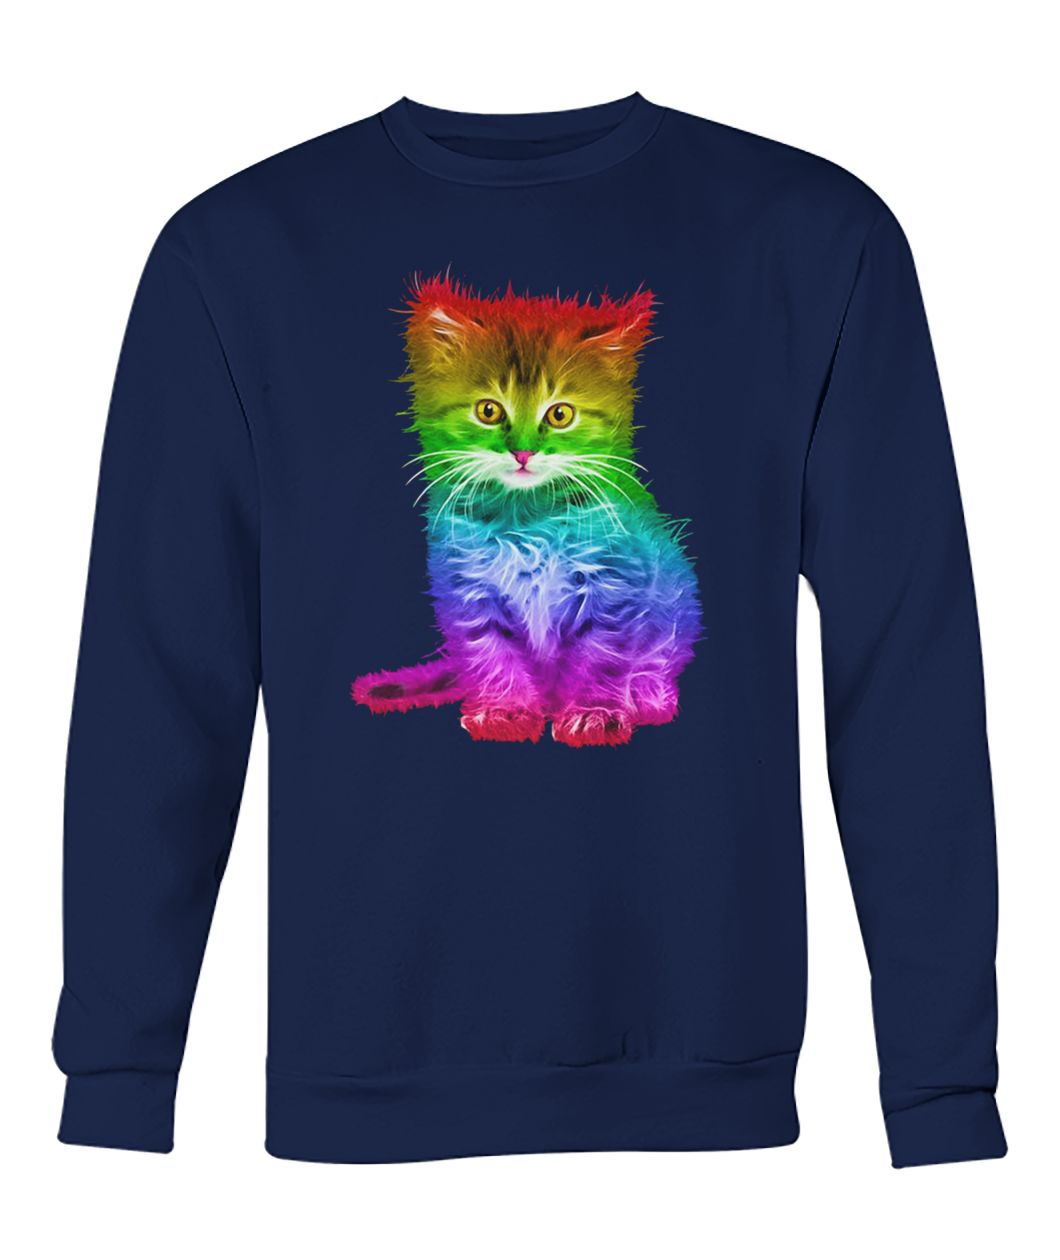 Rainbow cat lgbt gay pride awareness crew neck sweatshirt